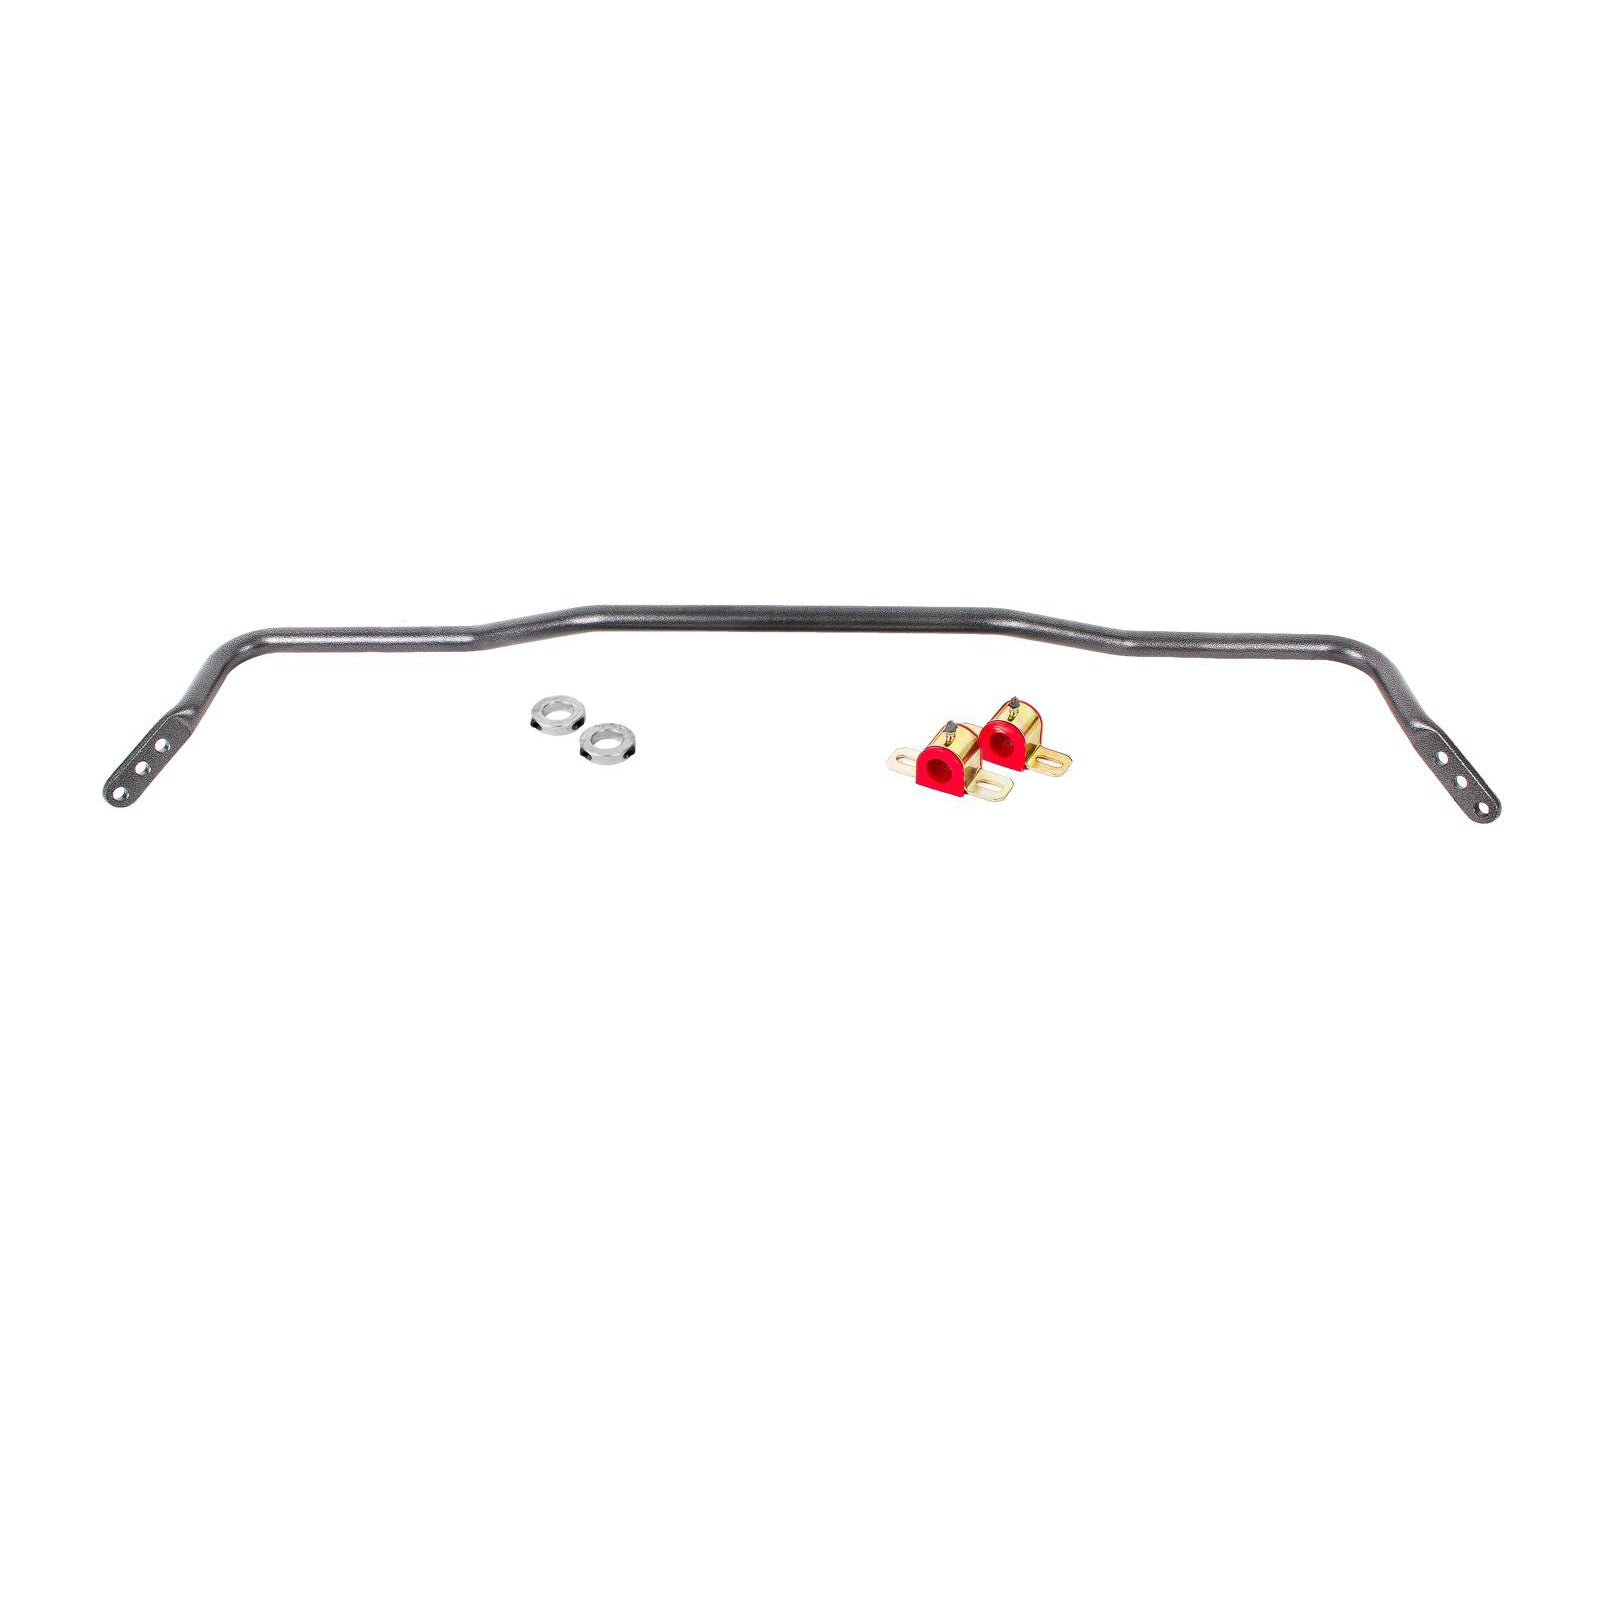 BMR Suspension Sway Bar Kit, Rear, Hollow, 25mm, 3-hole Adjustable